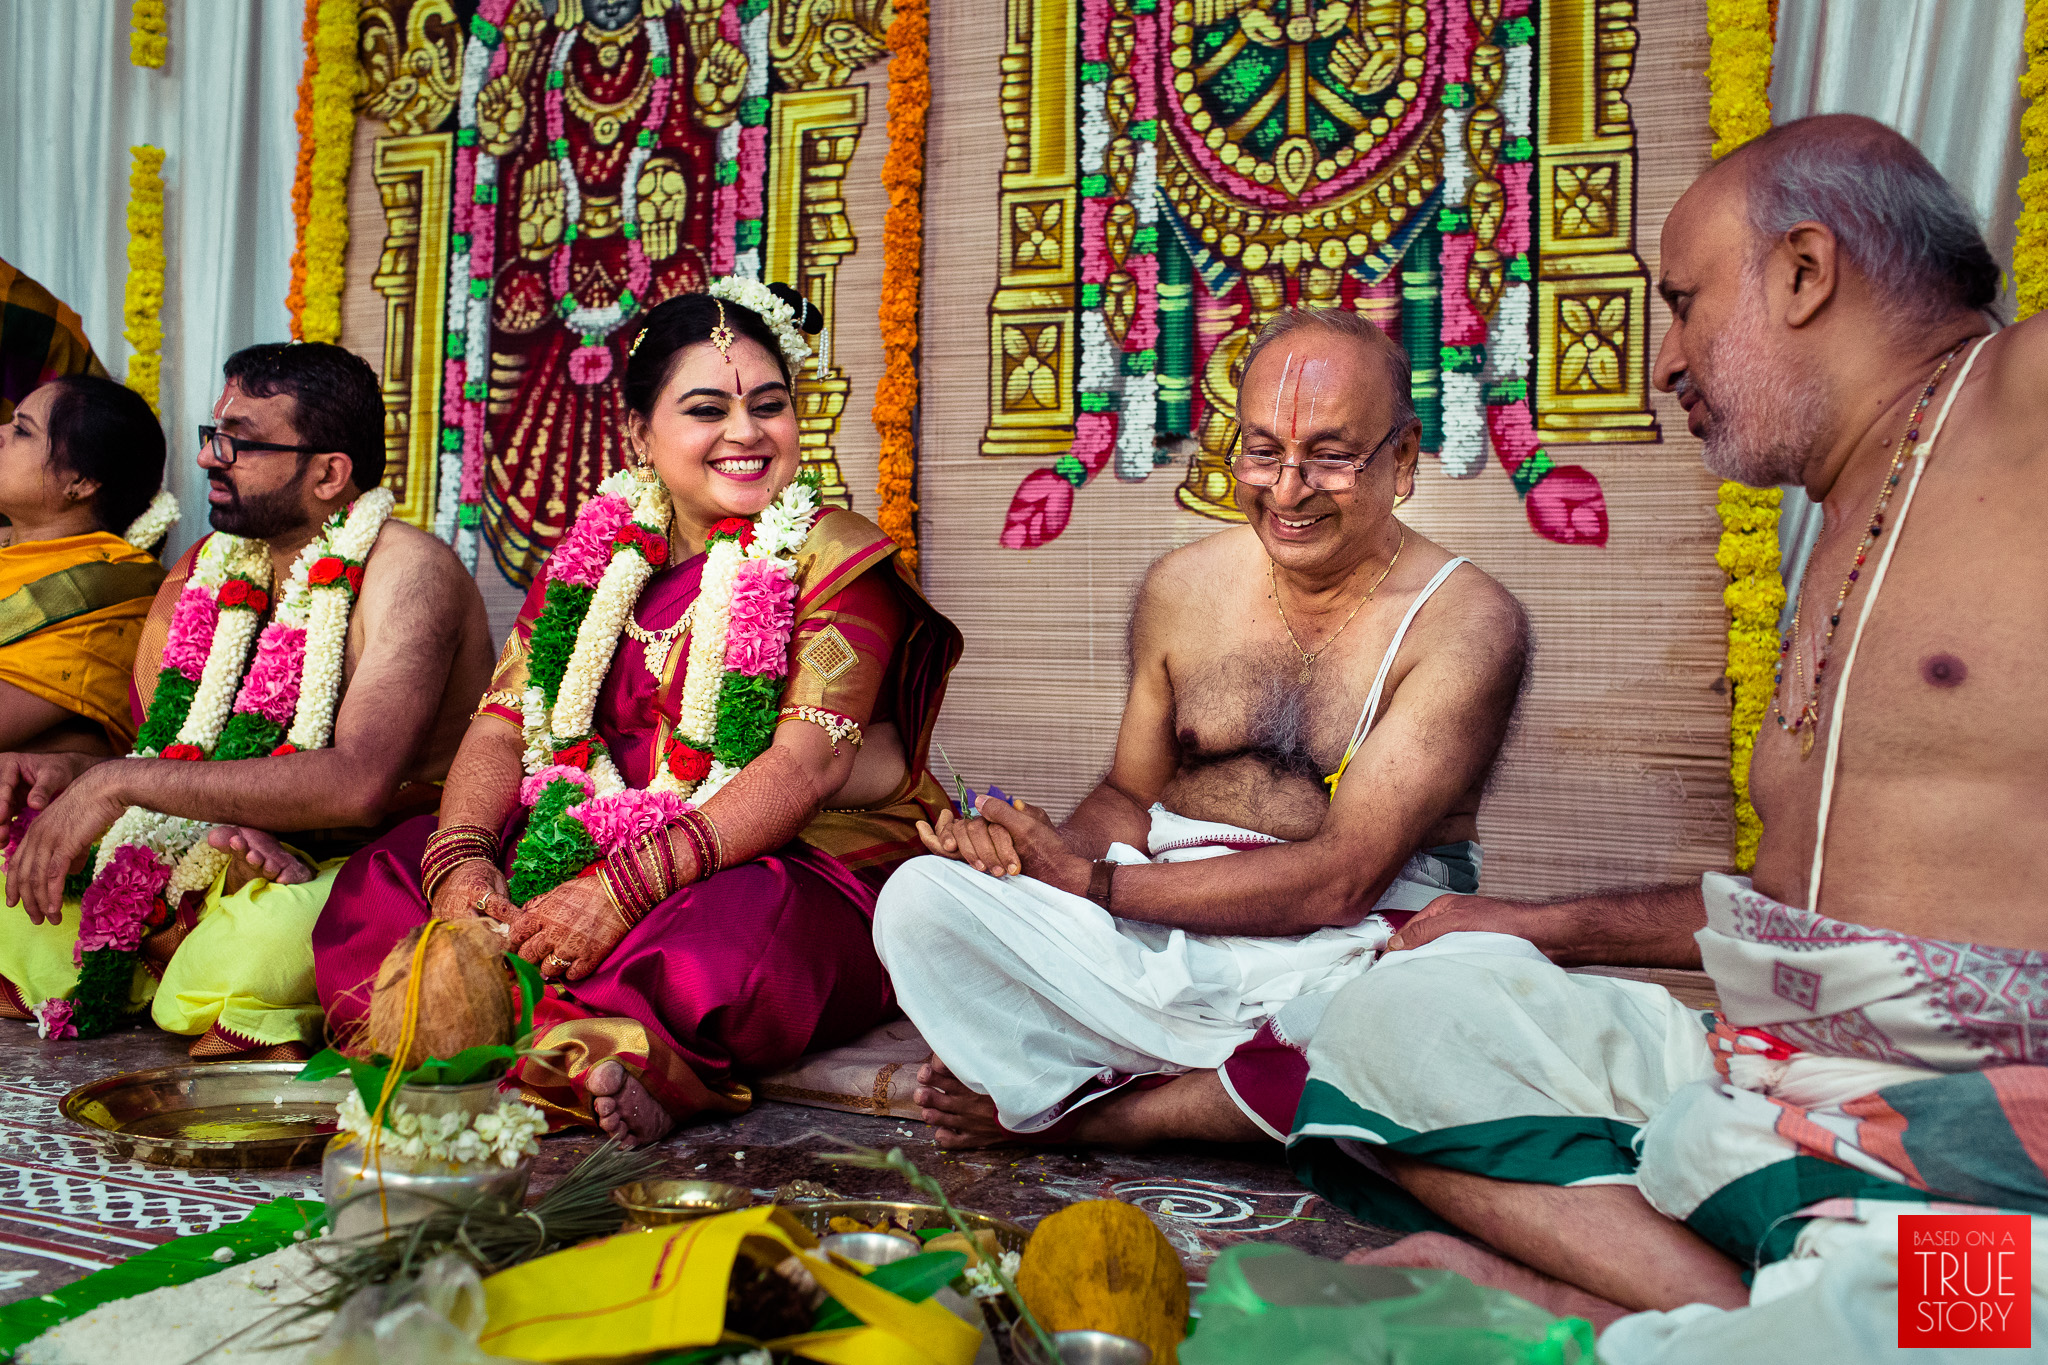 tambrahm-candid-wedding-photographer-bangalore-0028.jpg